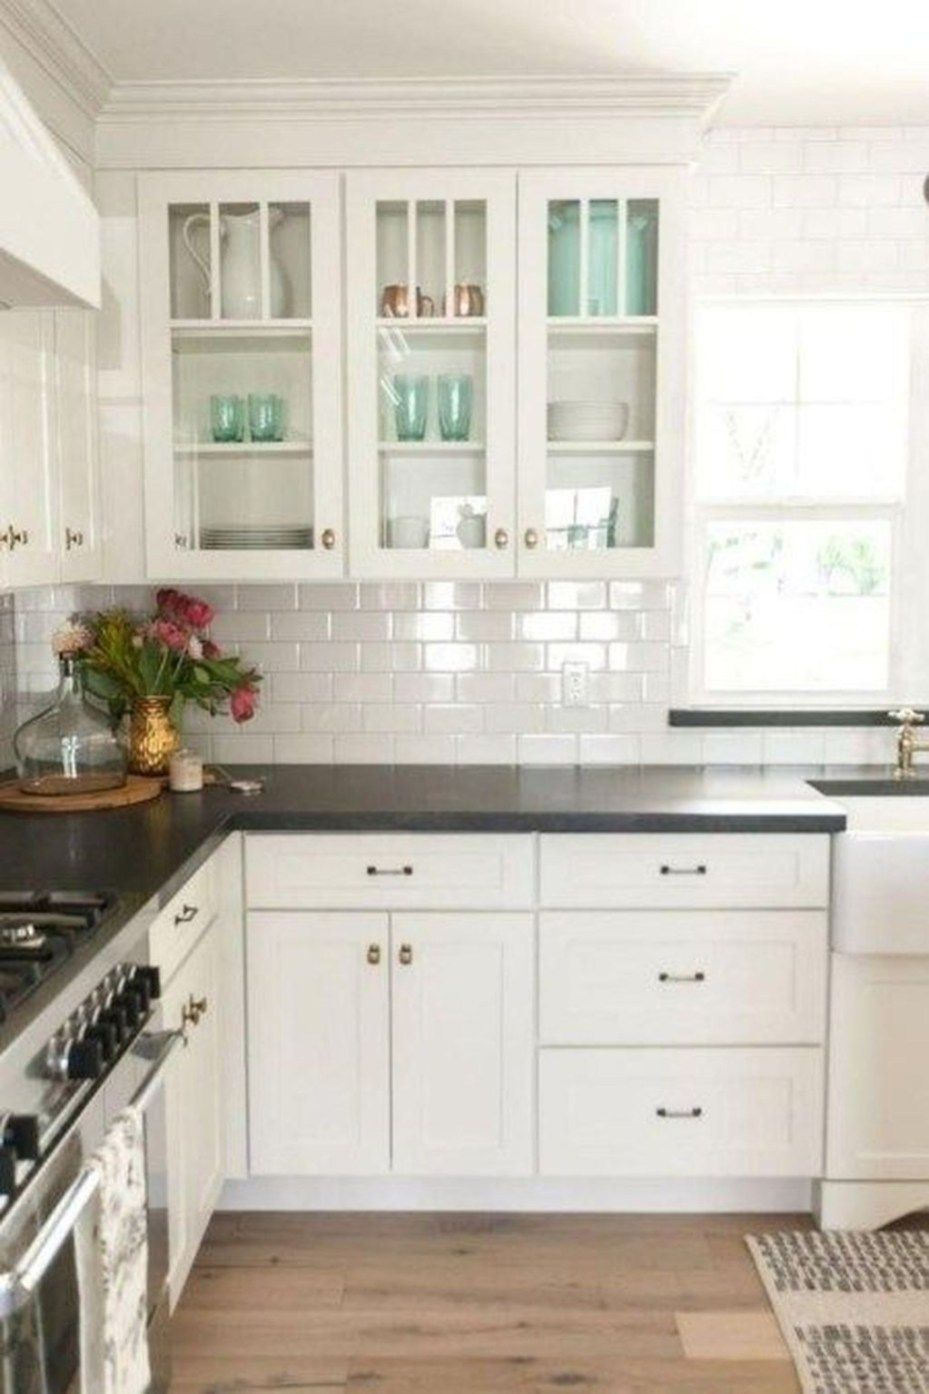 32 Beautiful Vintage Kitchen Decorations Ideas To Make A Nice Look Trendehouse Kitchen Cabinets Decor New Kitchen Cabinets Kitchen Renovation